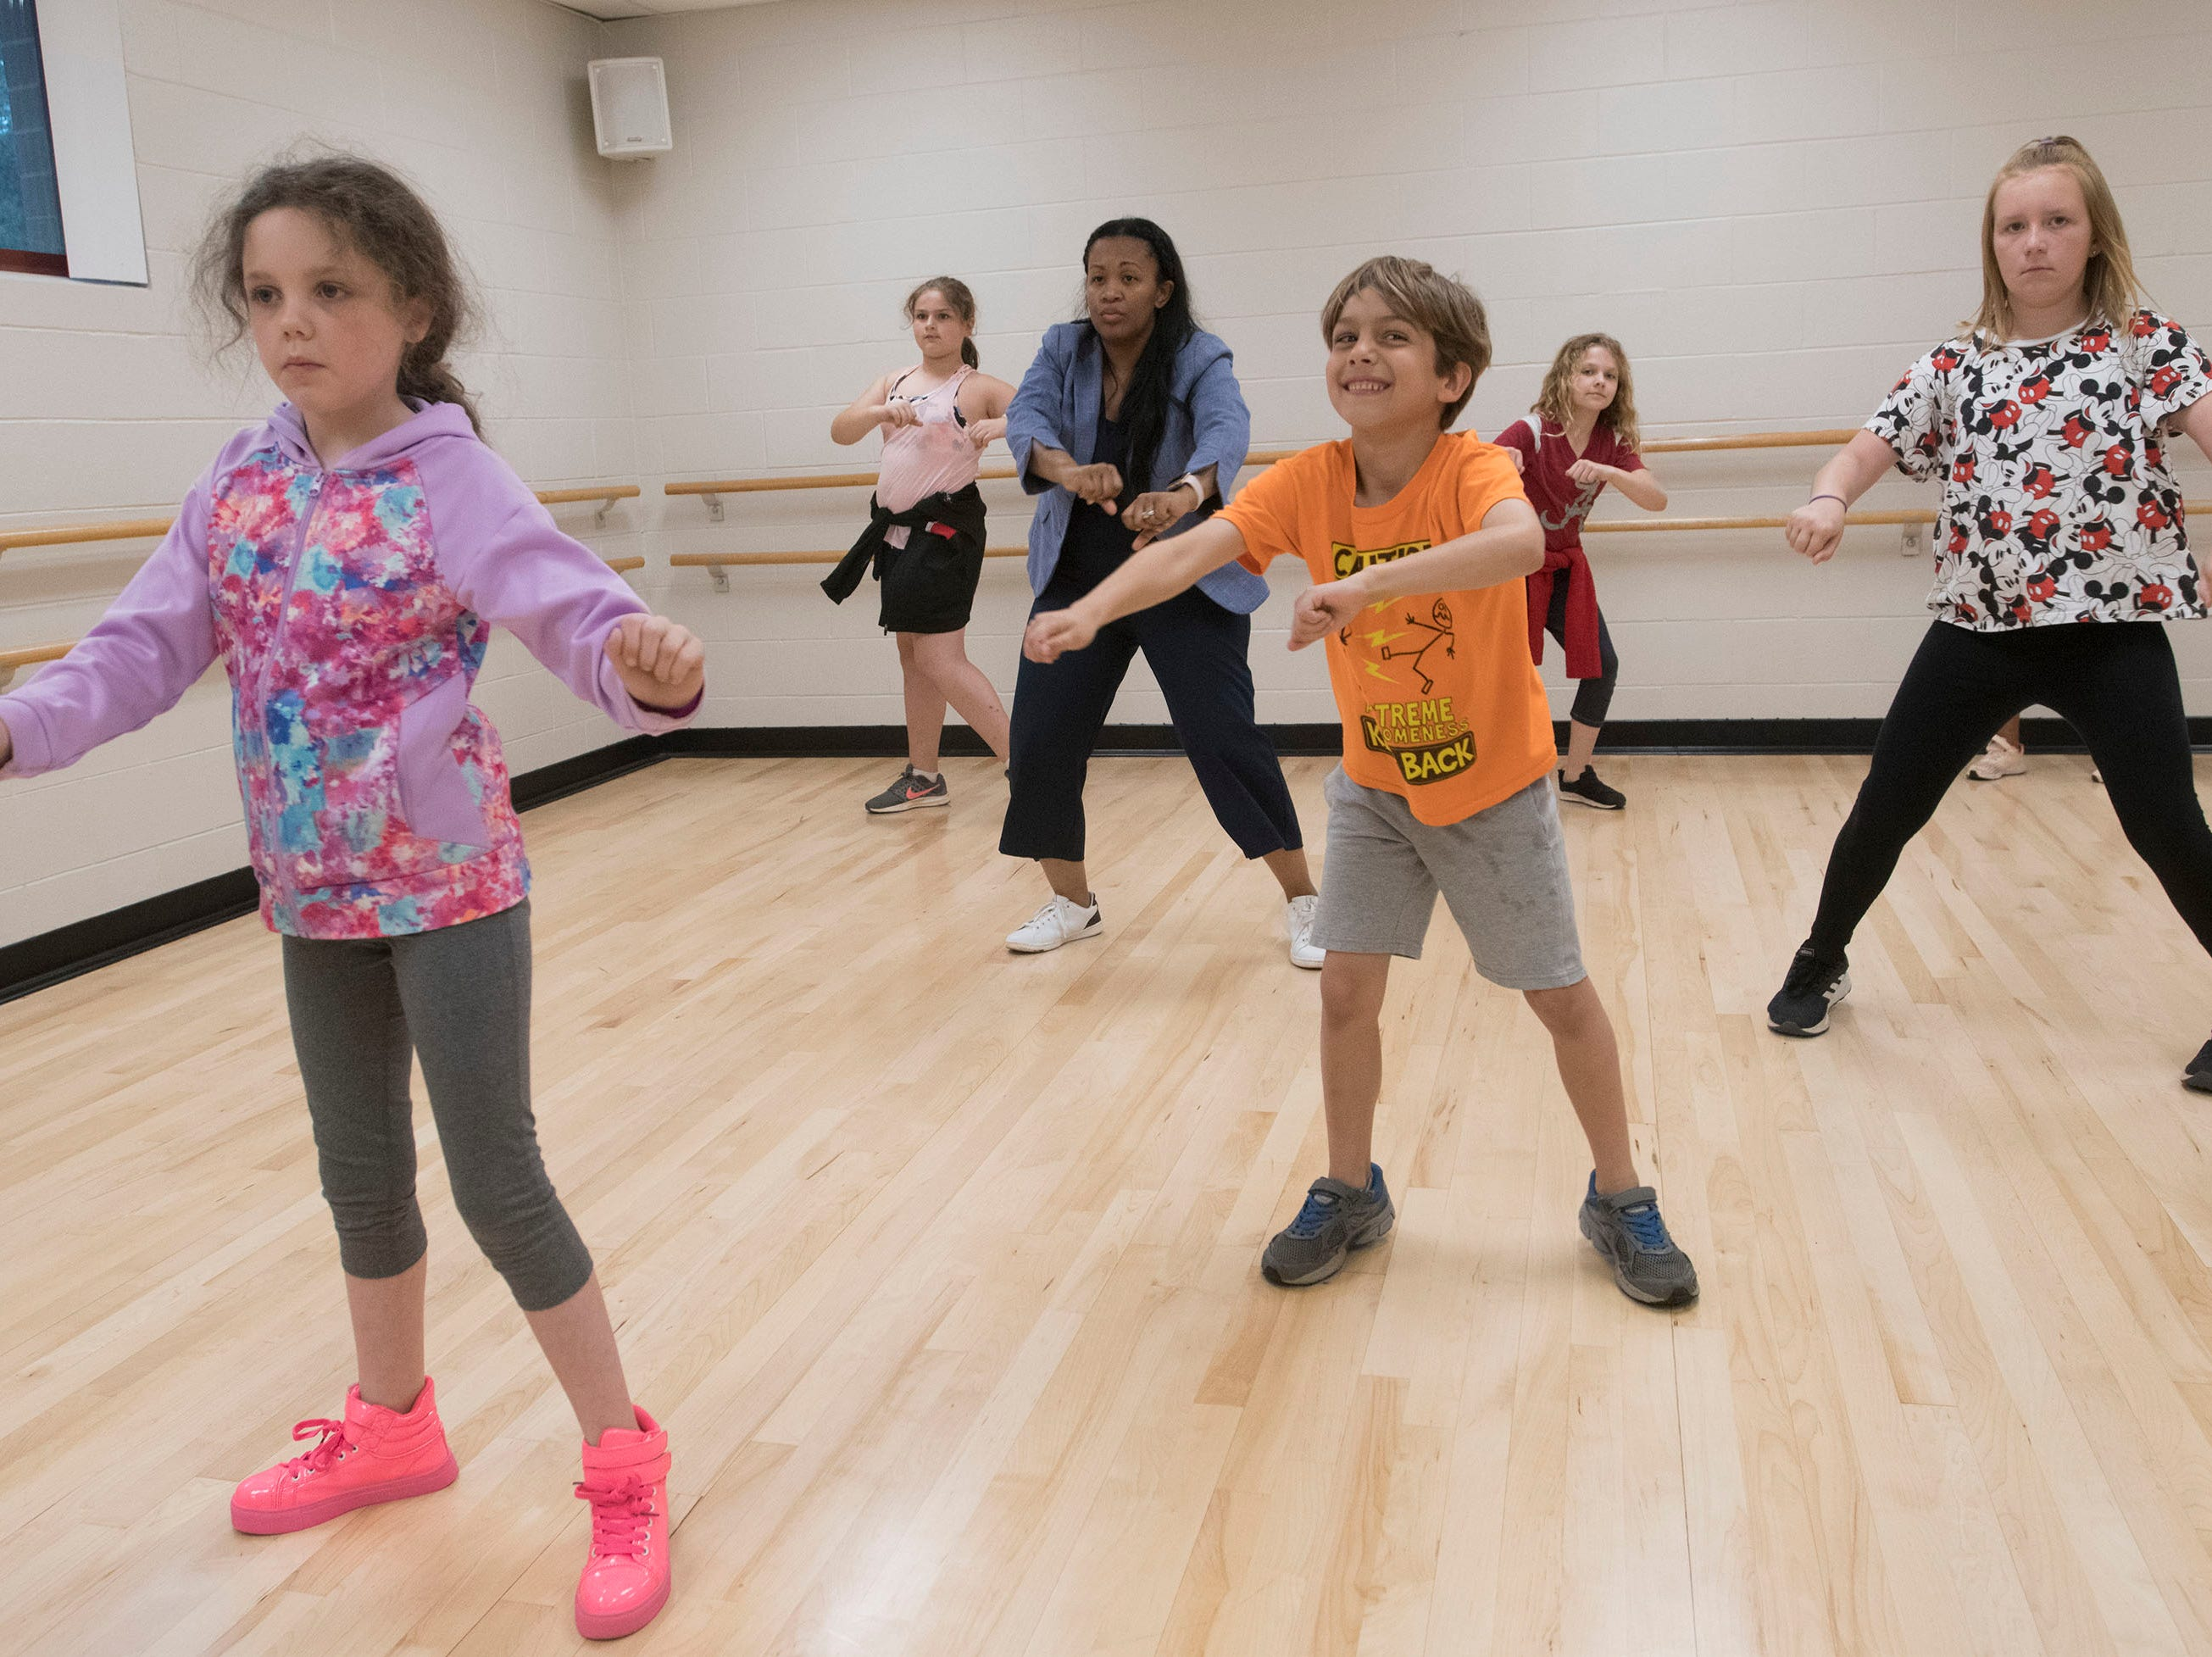 Joy Gainer teaches a group of kids a few hip hop dance moves during a class at the Gull Point Community Center on Spanish Trail on Wednesday, March 13, 2019.